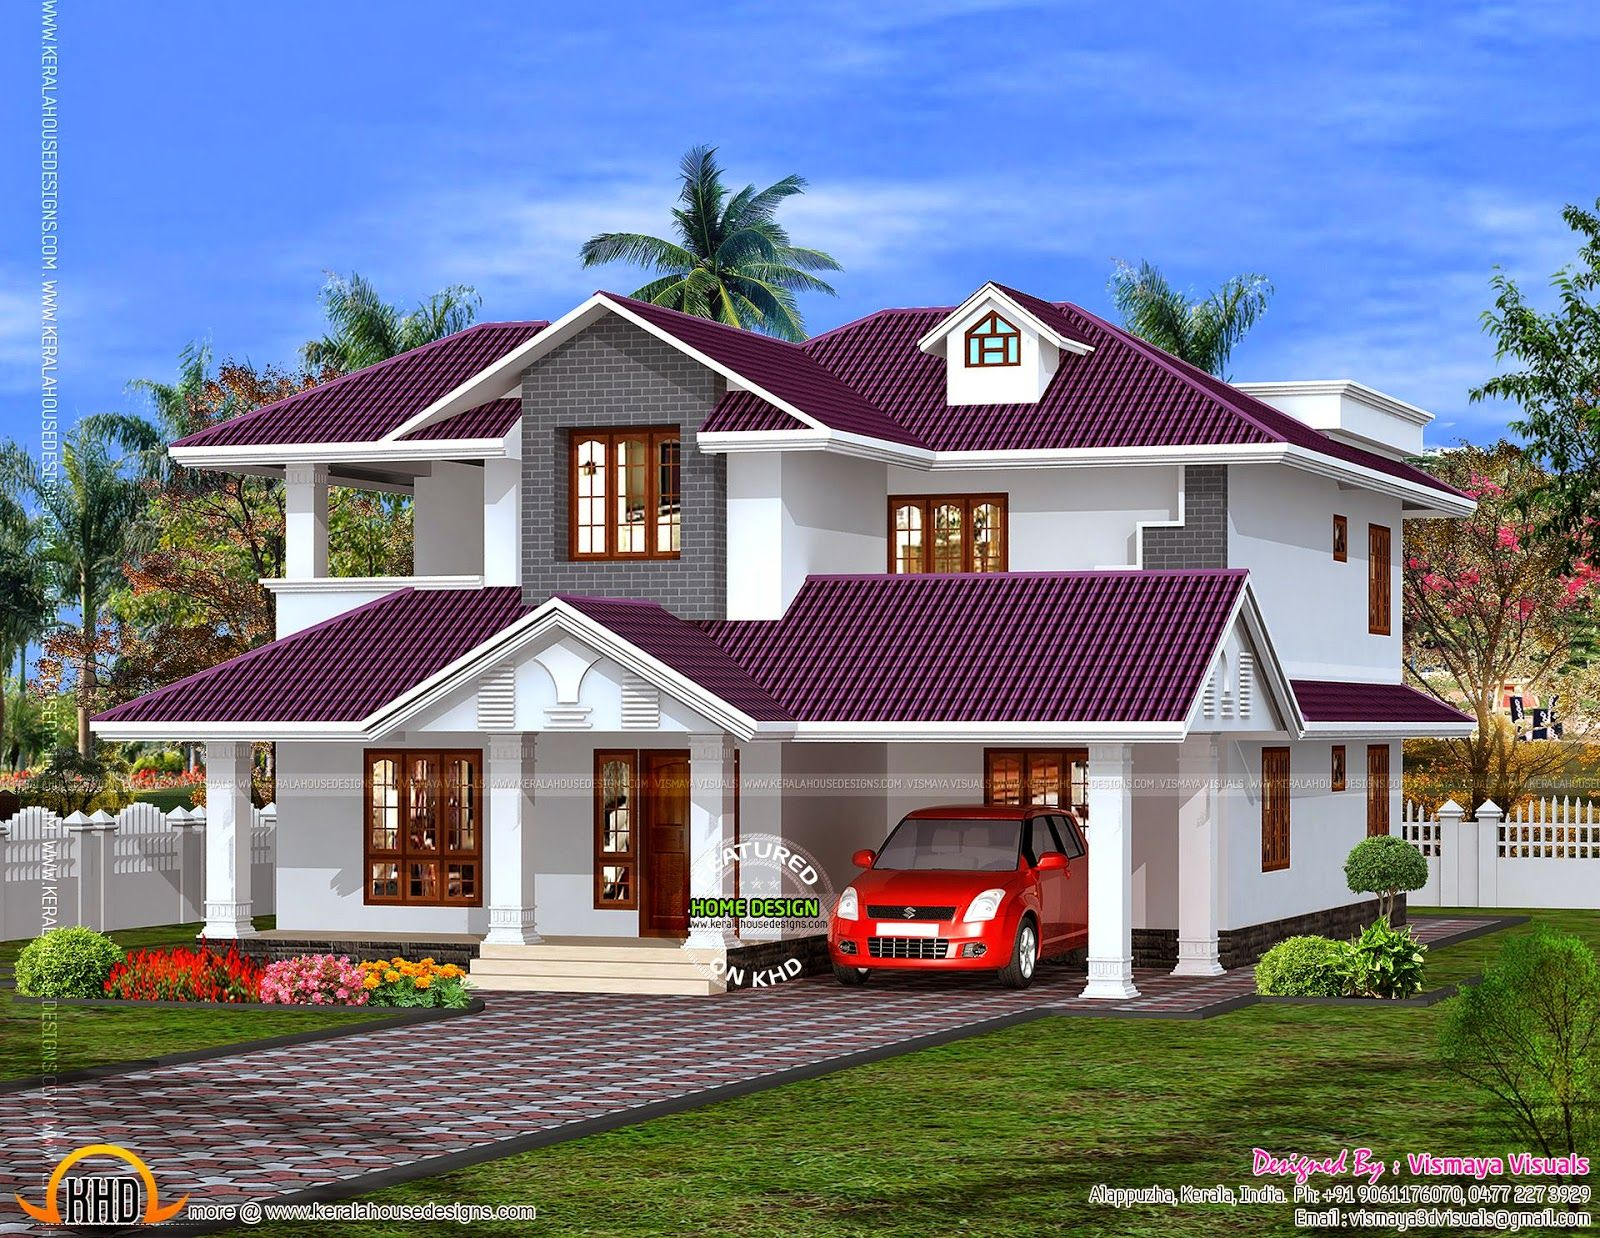 Beautiful House Roof Design House House Roof Design House Design Small House Design